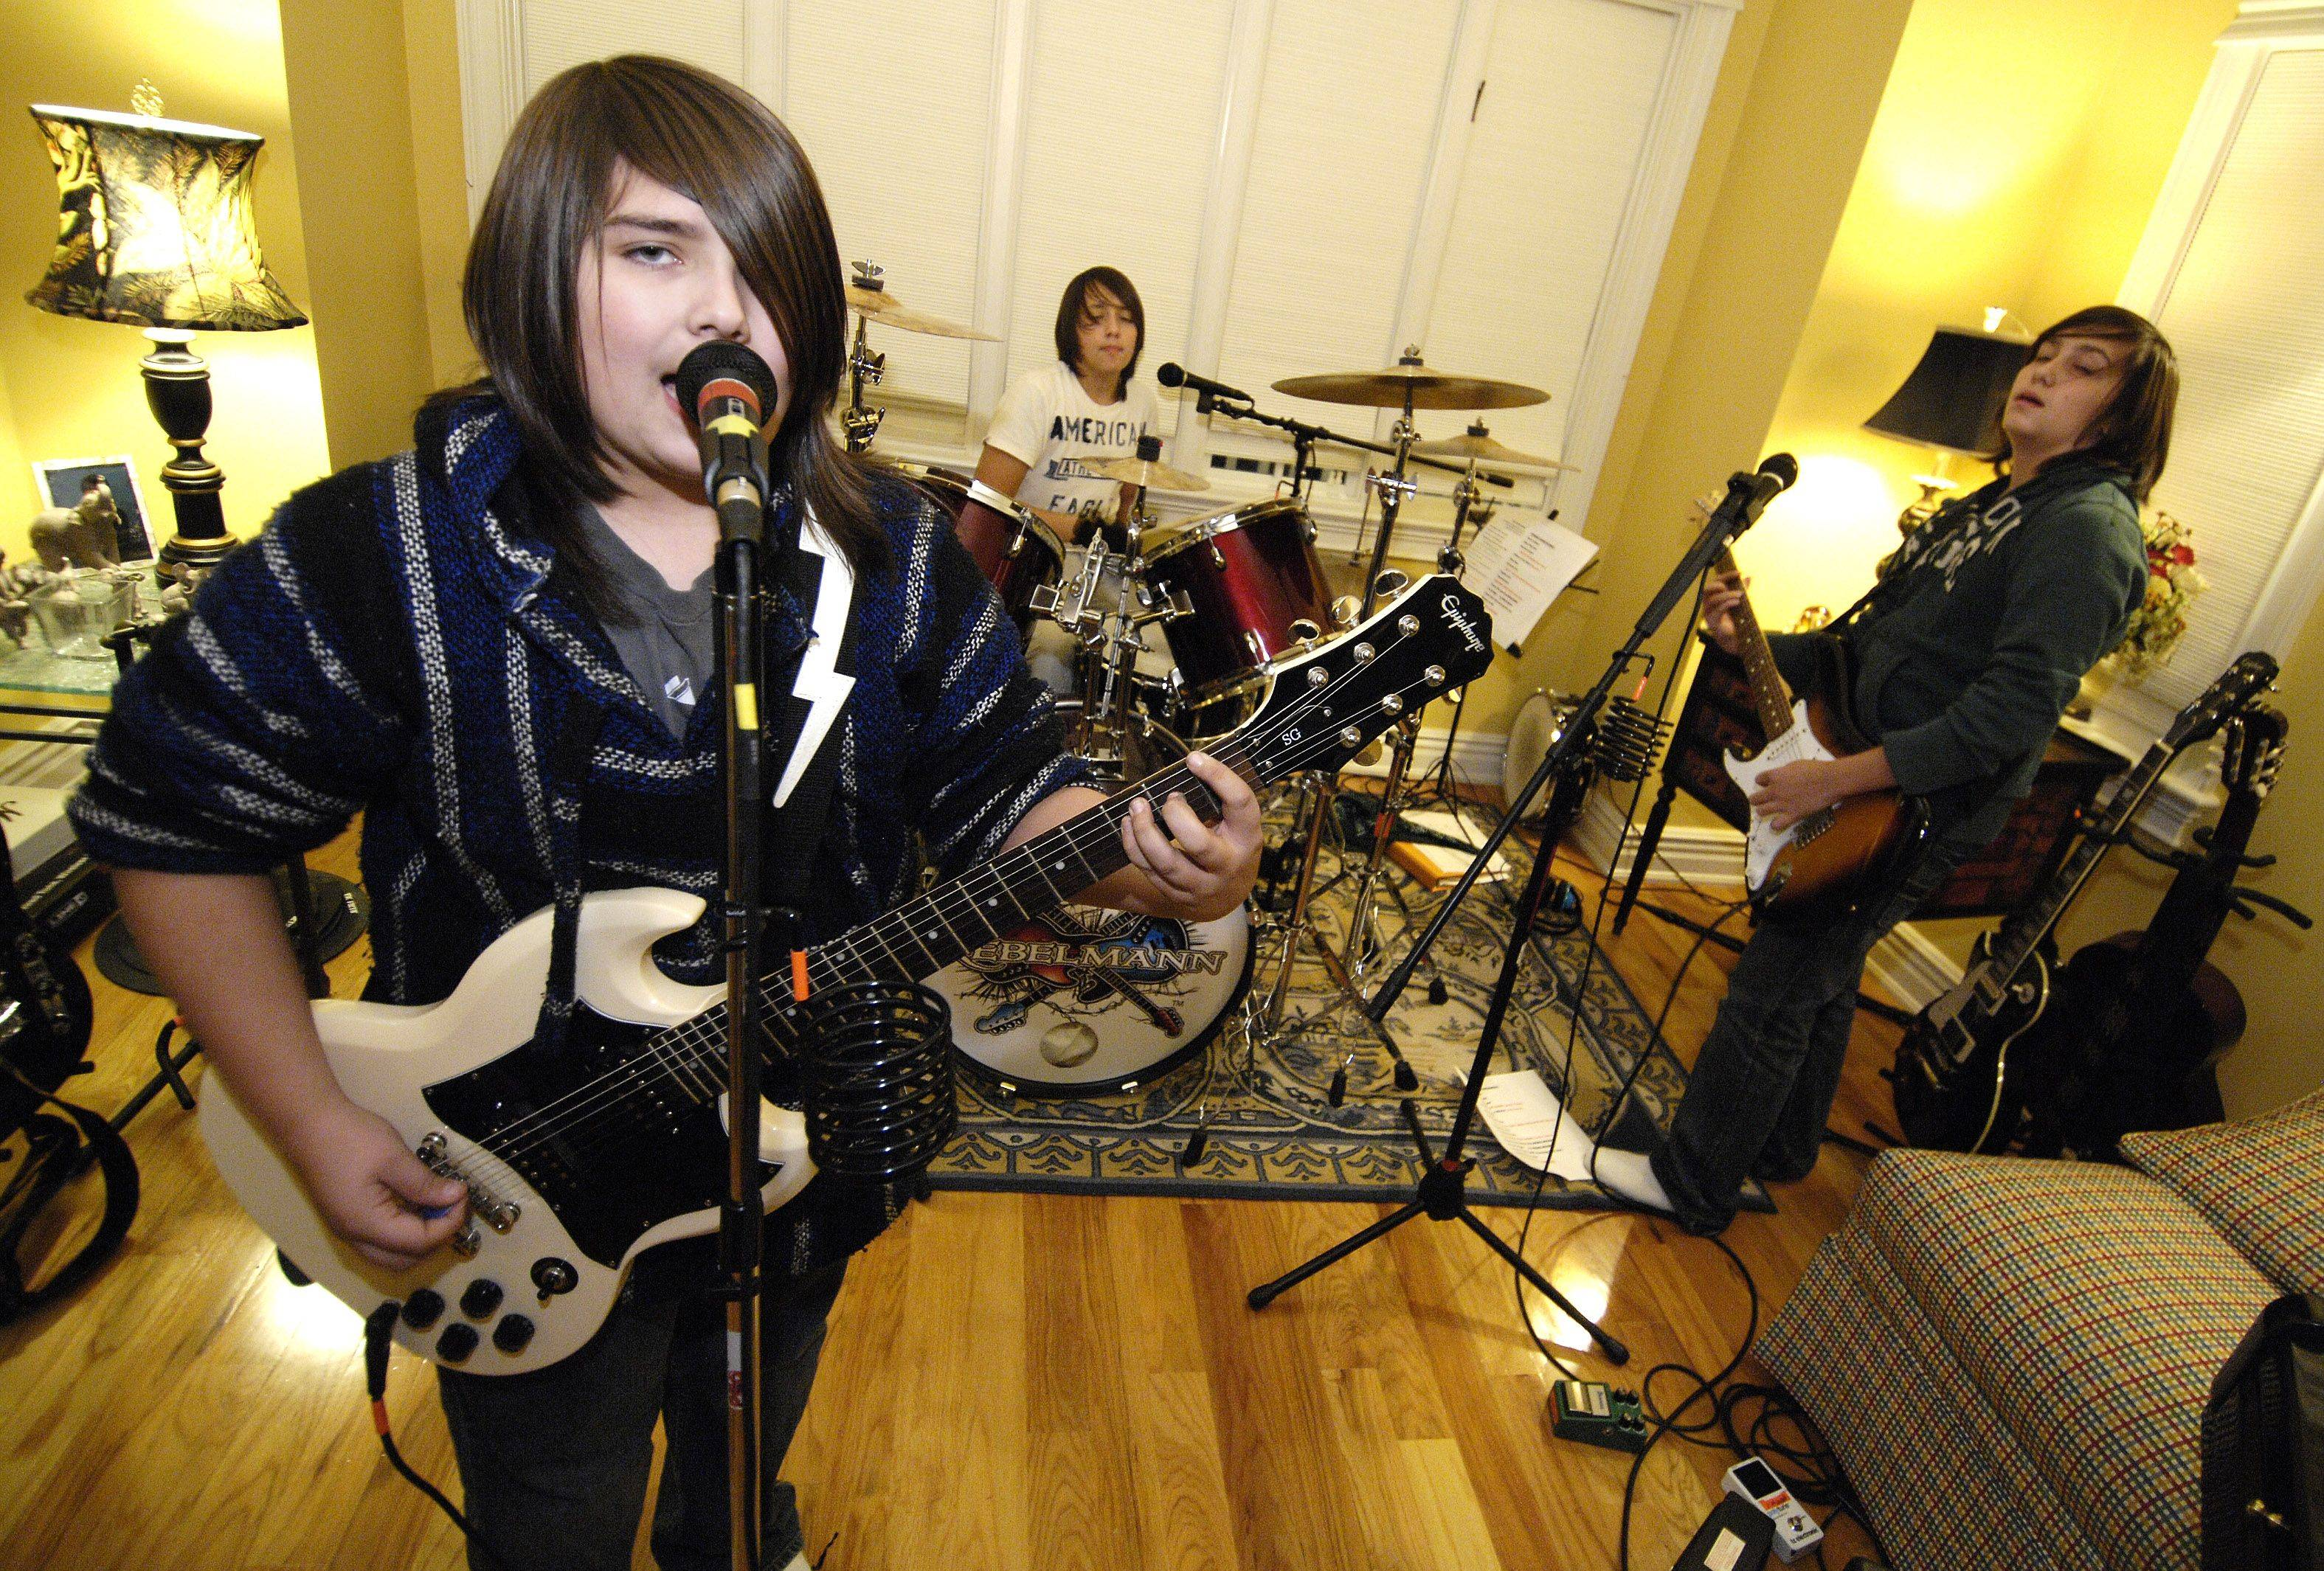 The lead singer of Rebelmann, Clayton Mann, 12, practices with his 14-year-old twin brothers, Johnathon (on guitar) and Bryce (on drums.)